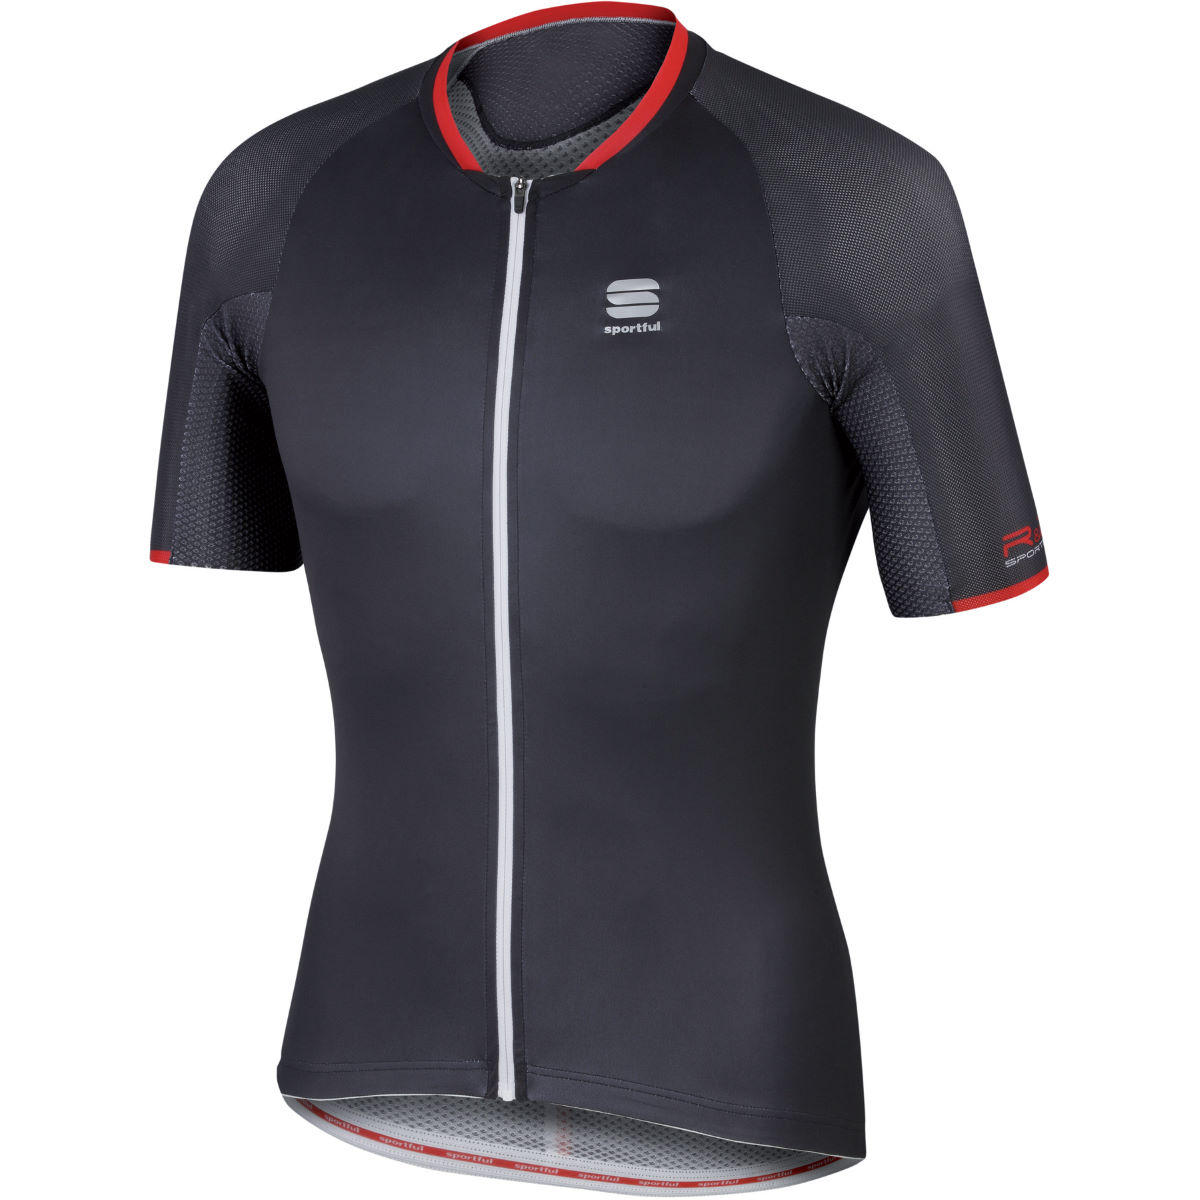 Maillot Sportful R & D Speed Skin - XXL Noir/Anthracite Maillots vélo à manches courtes